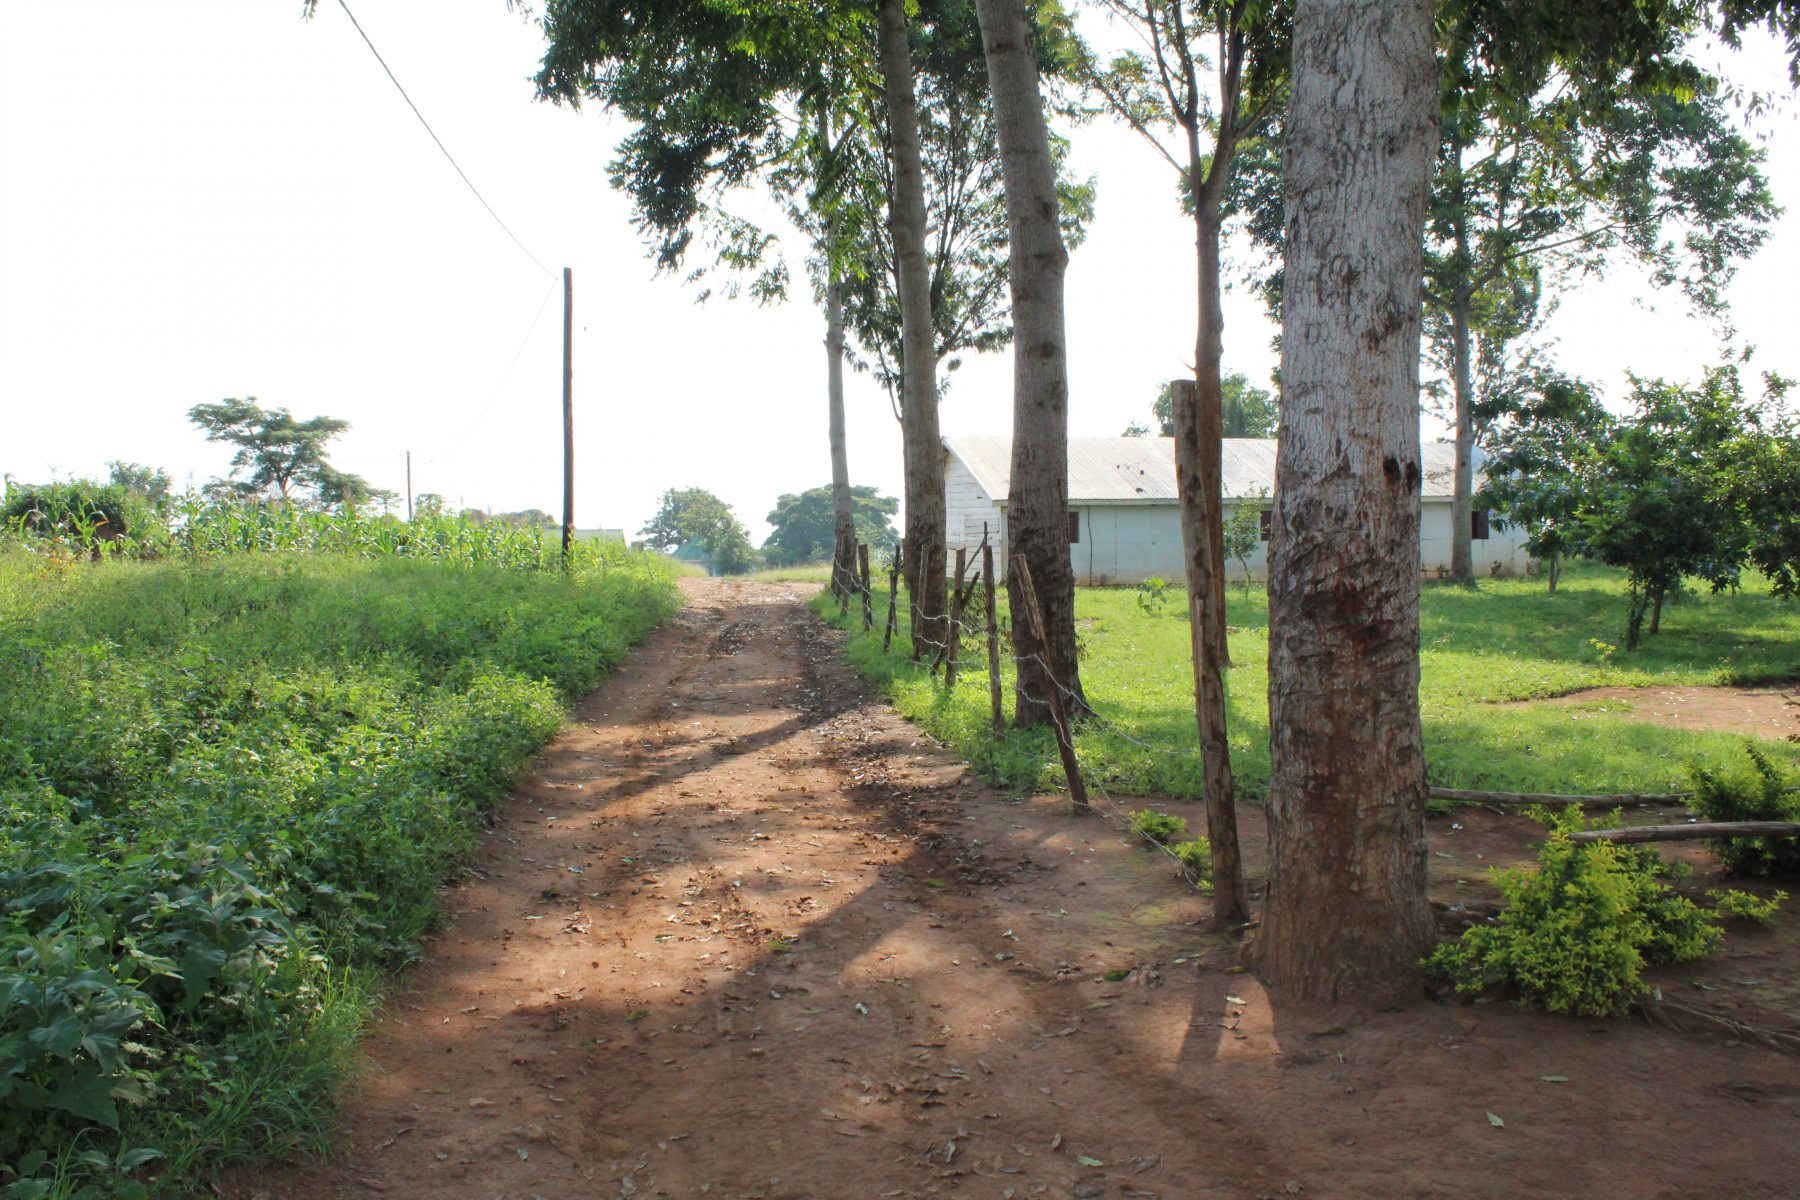 A Road on the EWCV Property, Bordered by Crops and Tall Trees